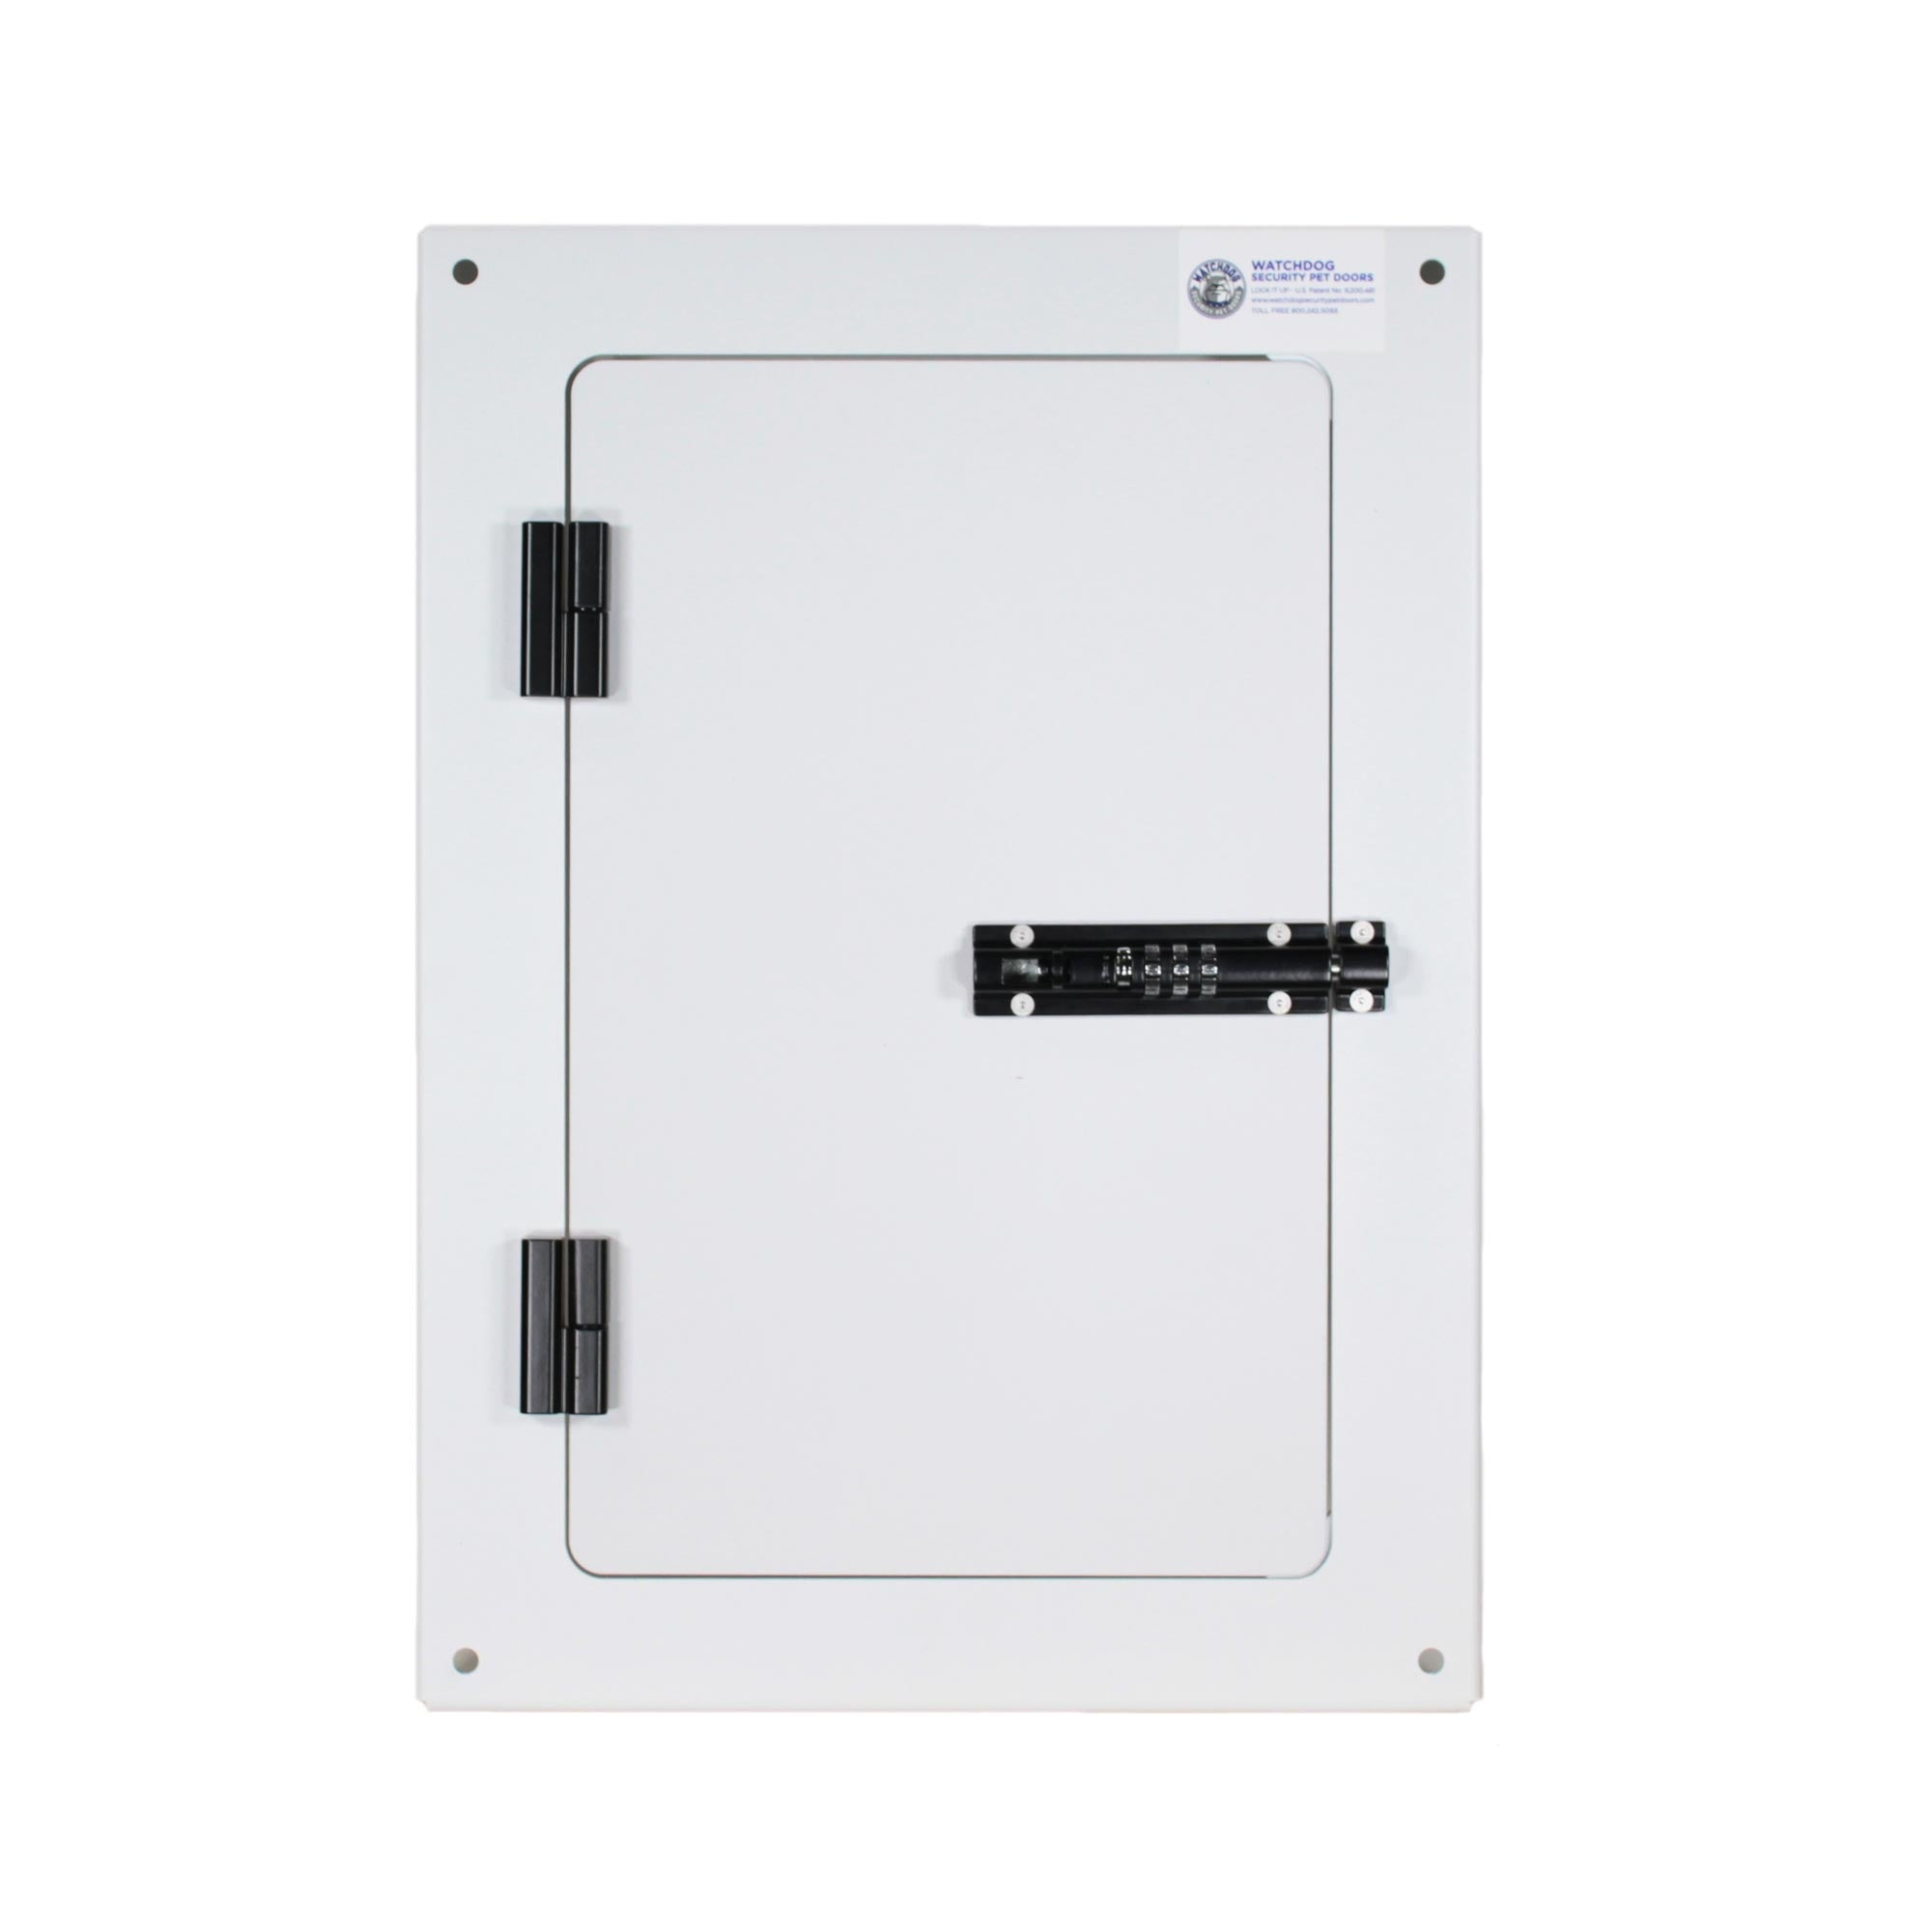 Watchdog steel security dog door with combo lock.